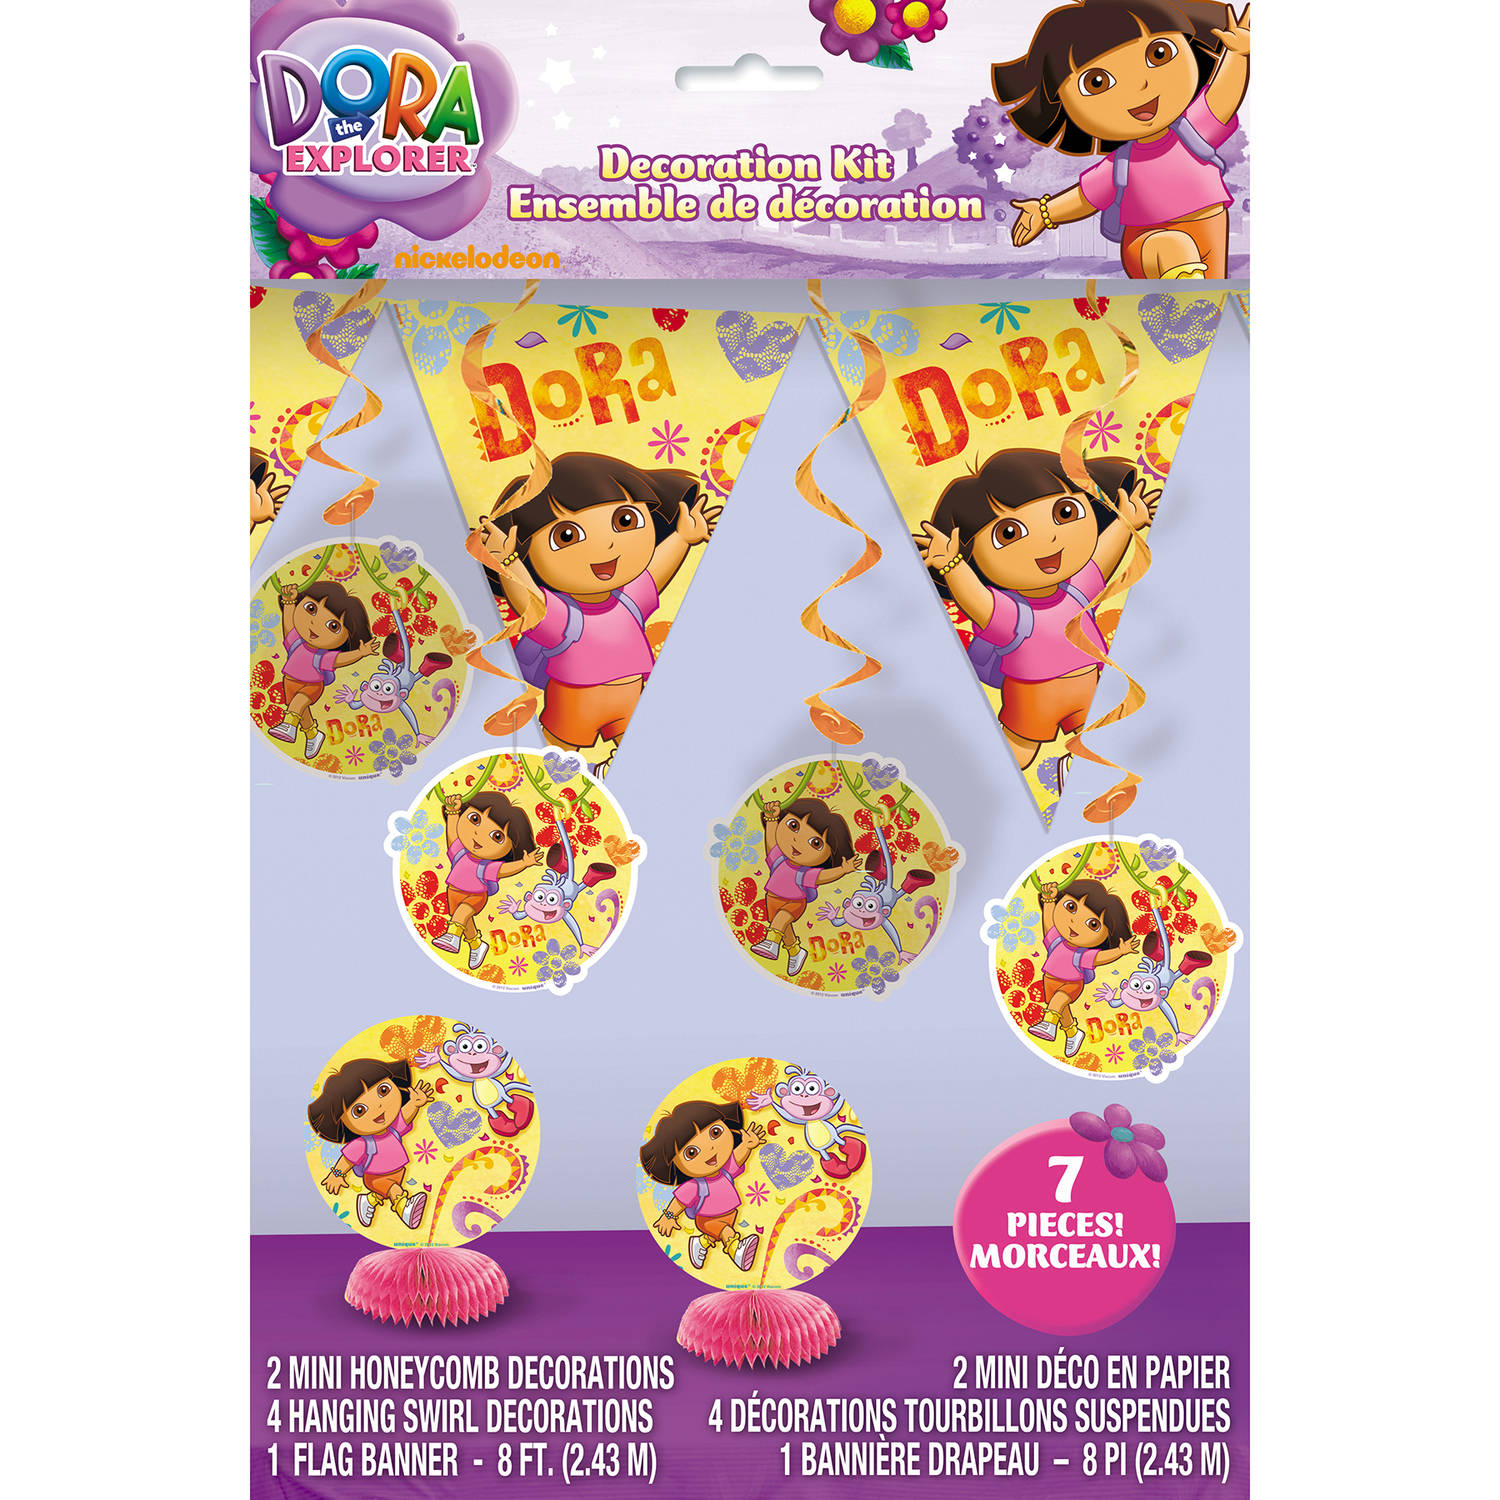 Dora the Explorer Decorating Kit, 7 Pieces